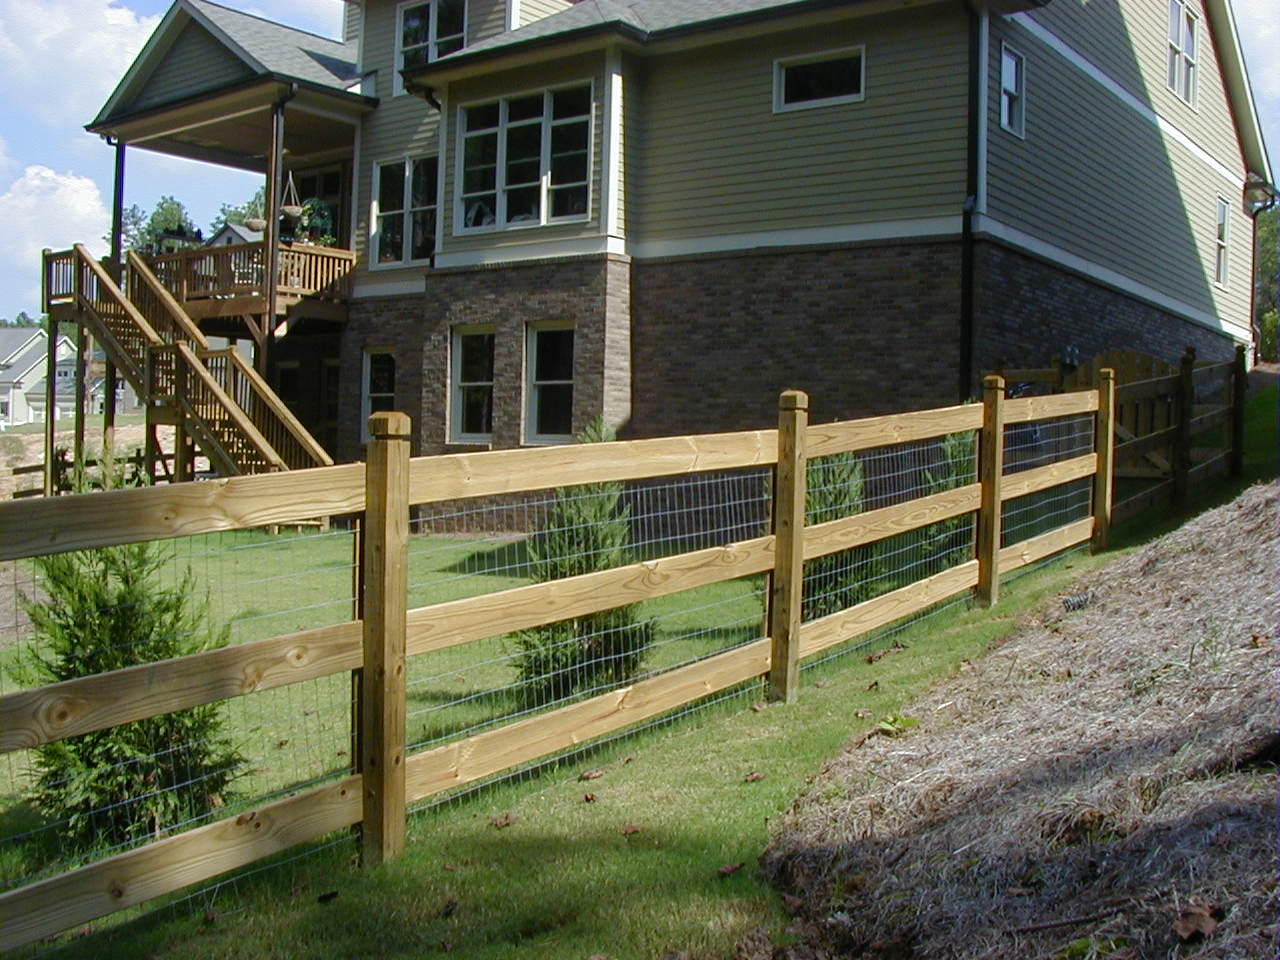 Pole Fence Designs Rail fence pictures marietta ga 903 treated pine ranch rail with wire workwithnaturefo